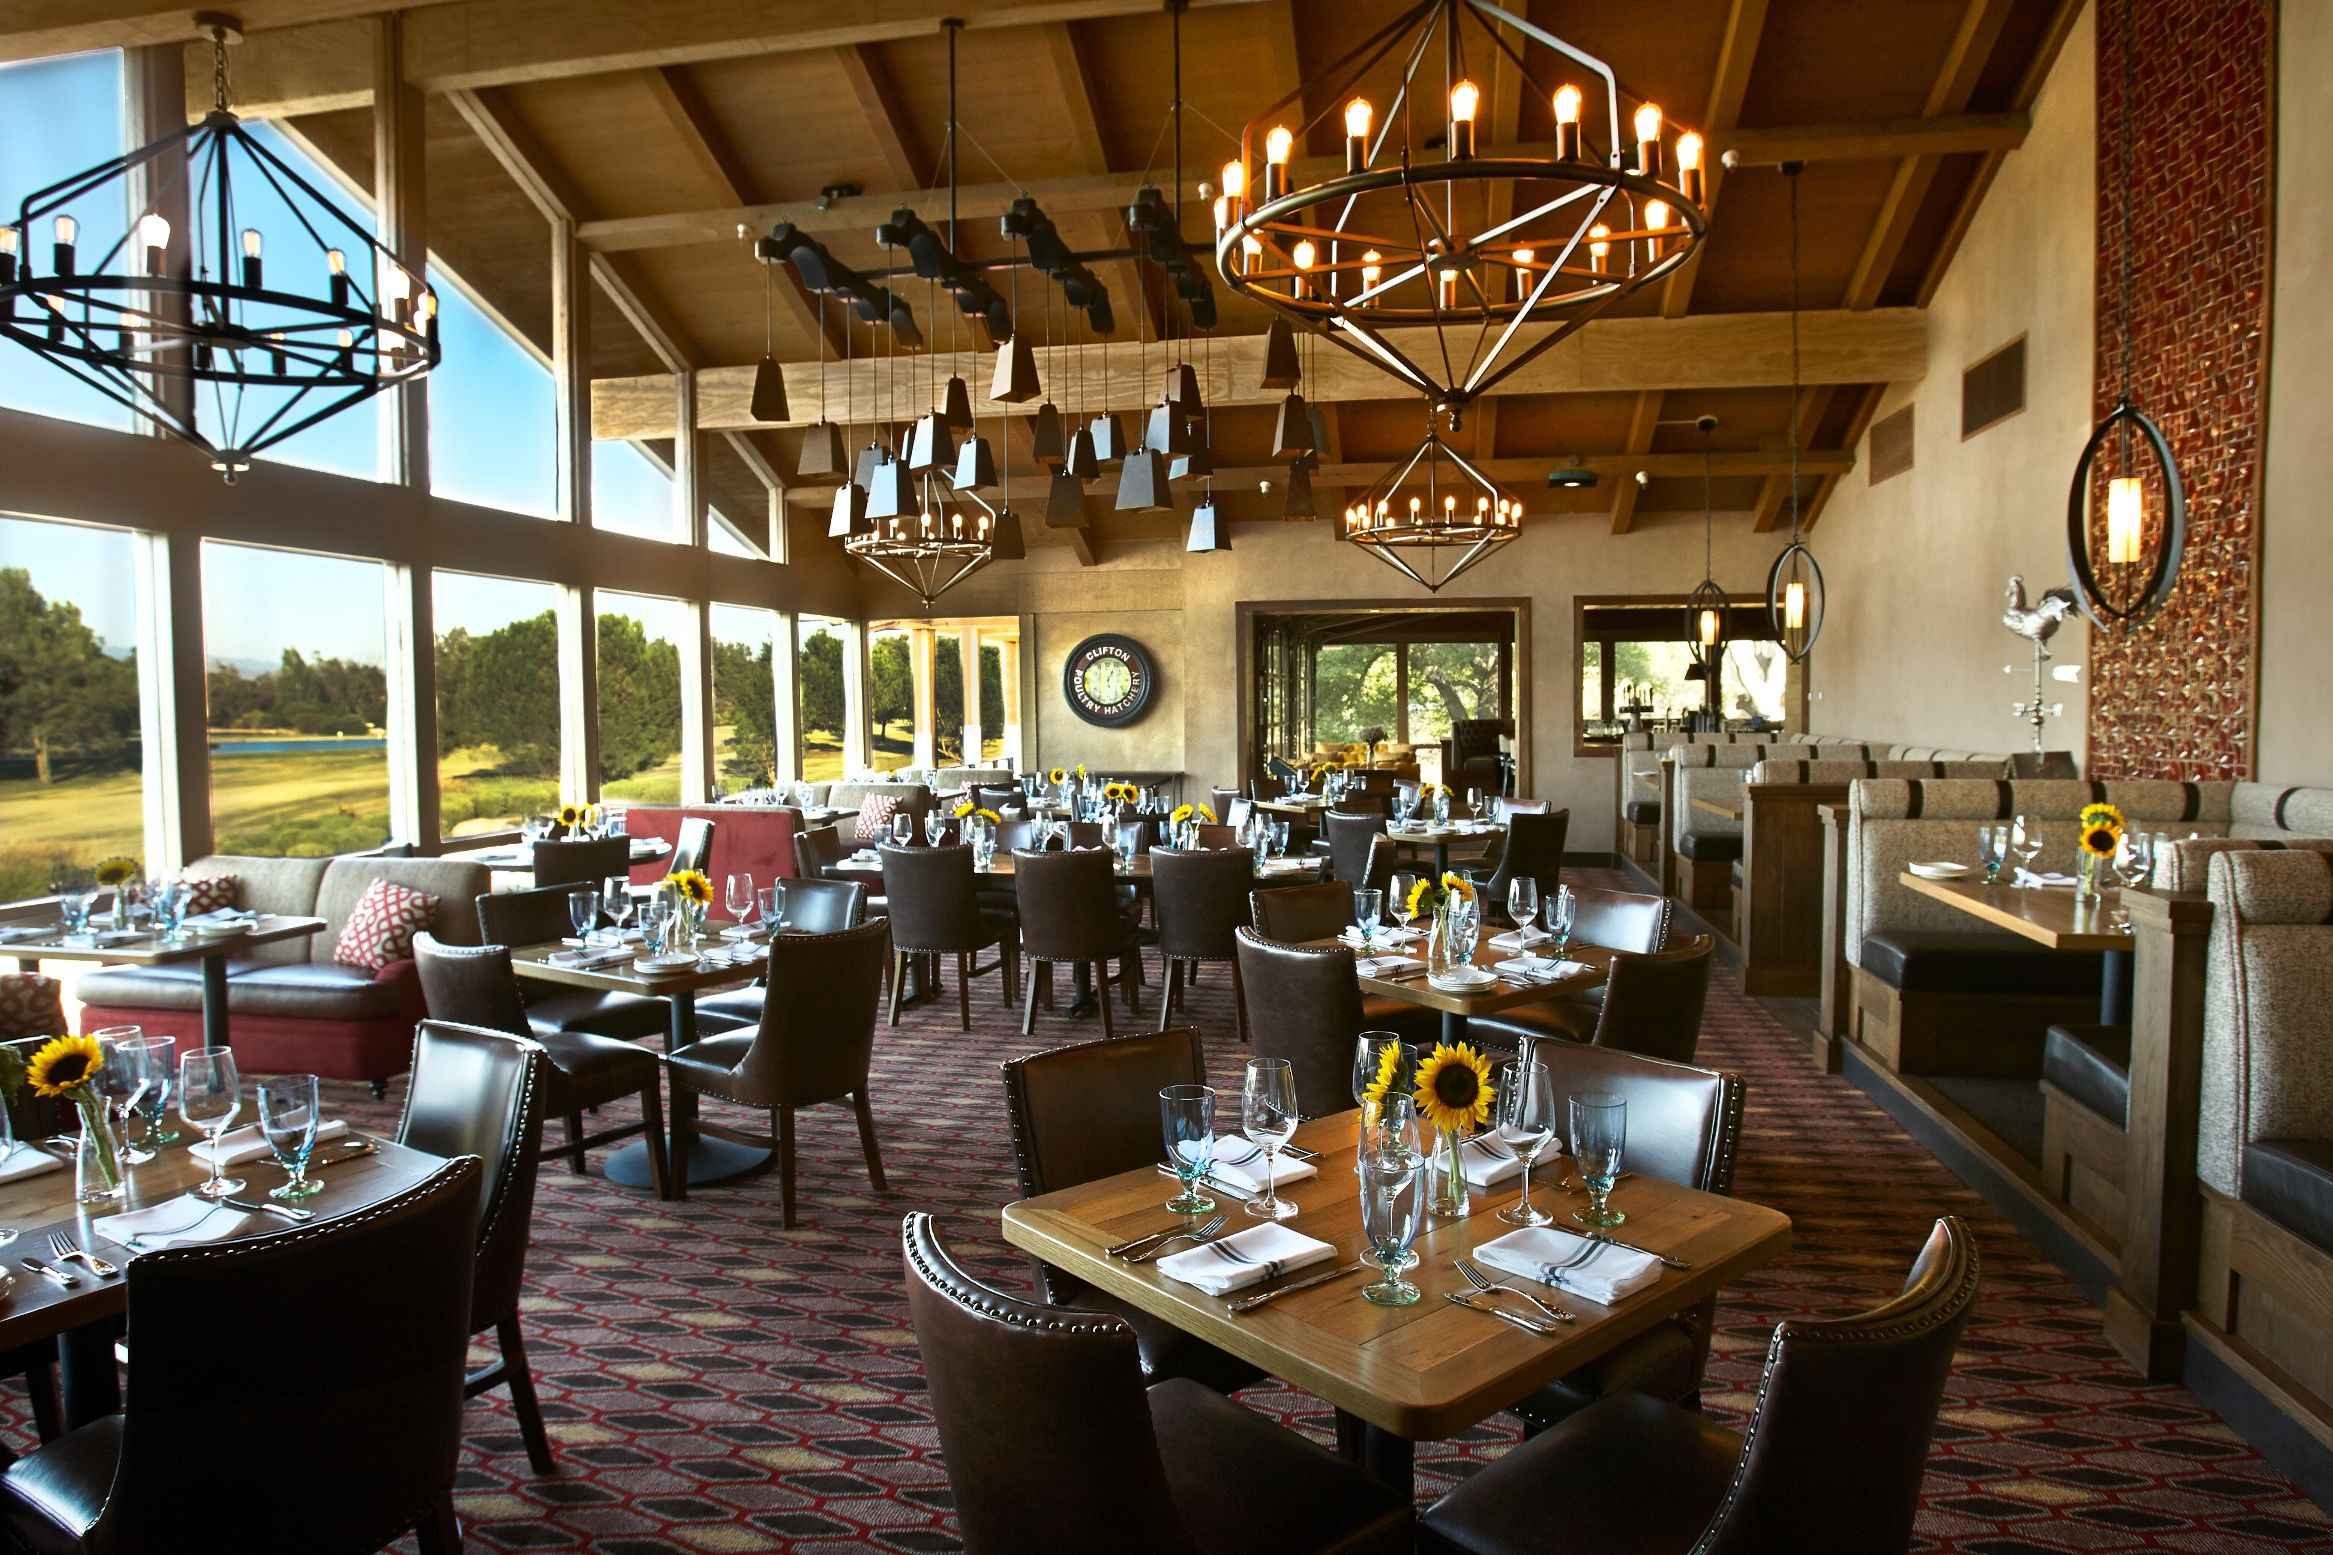 Temecula Creek Inn Cork Fire Kitchen Dining Room Farmhouse Kitchen Home Kitchens Temecula Restaurants